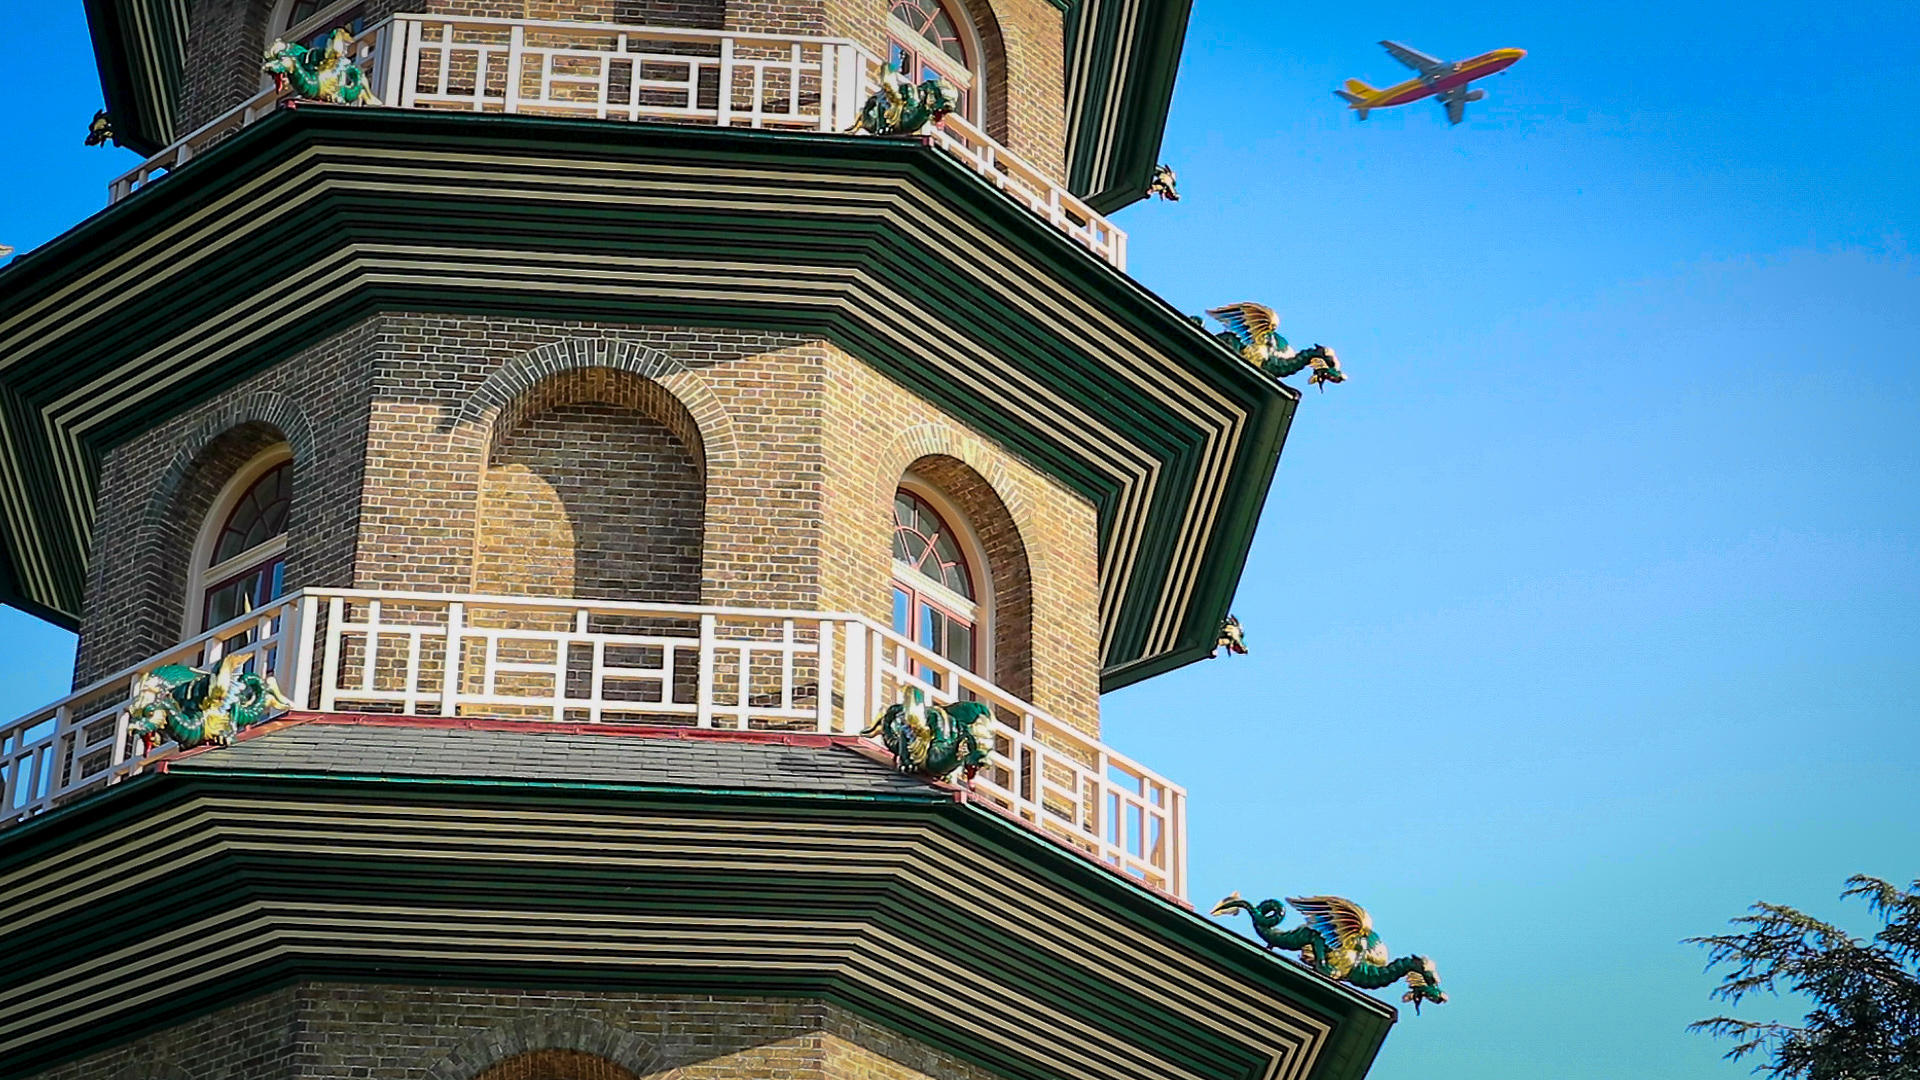 A close up photo of the Chinese Pagoda in Kew gardens with an airplane passing by in the background while clear blue sky